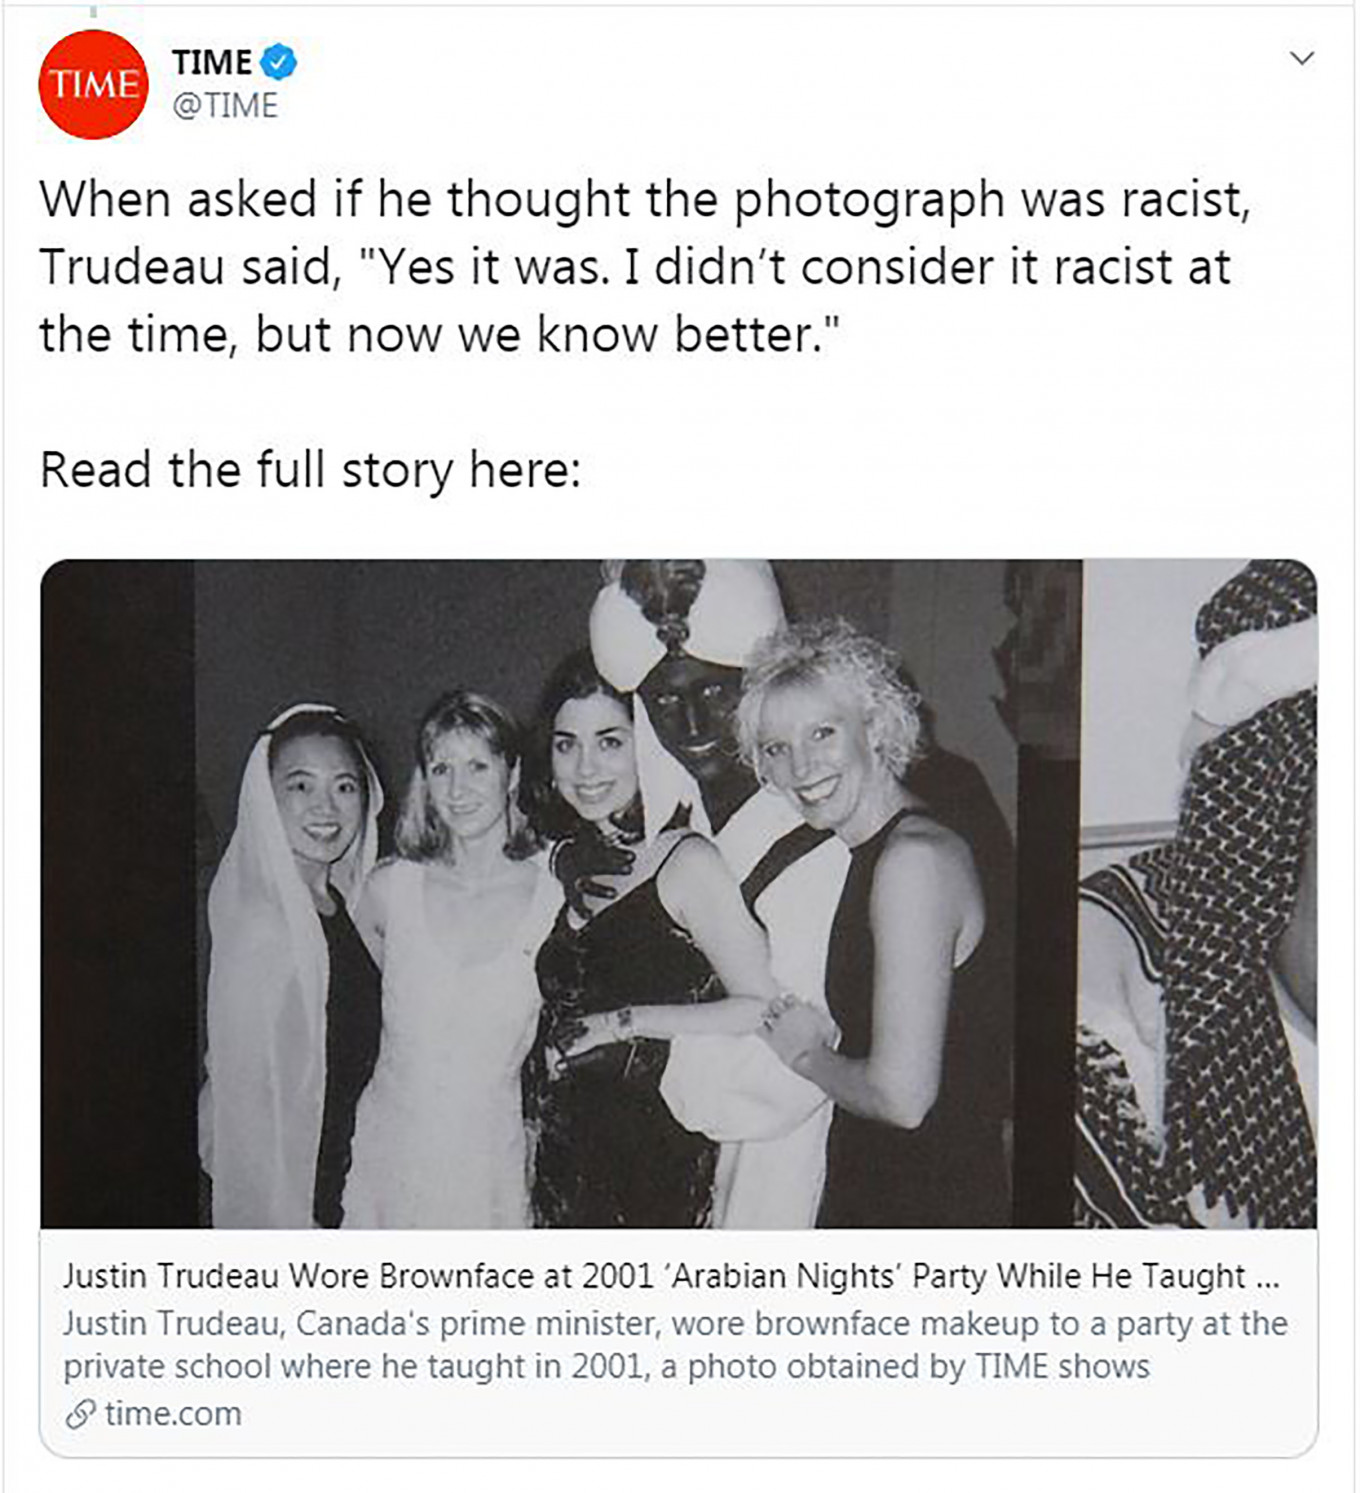 Trudeau apologizes again for wearing blackface as new images emerge